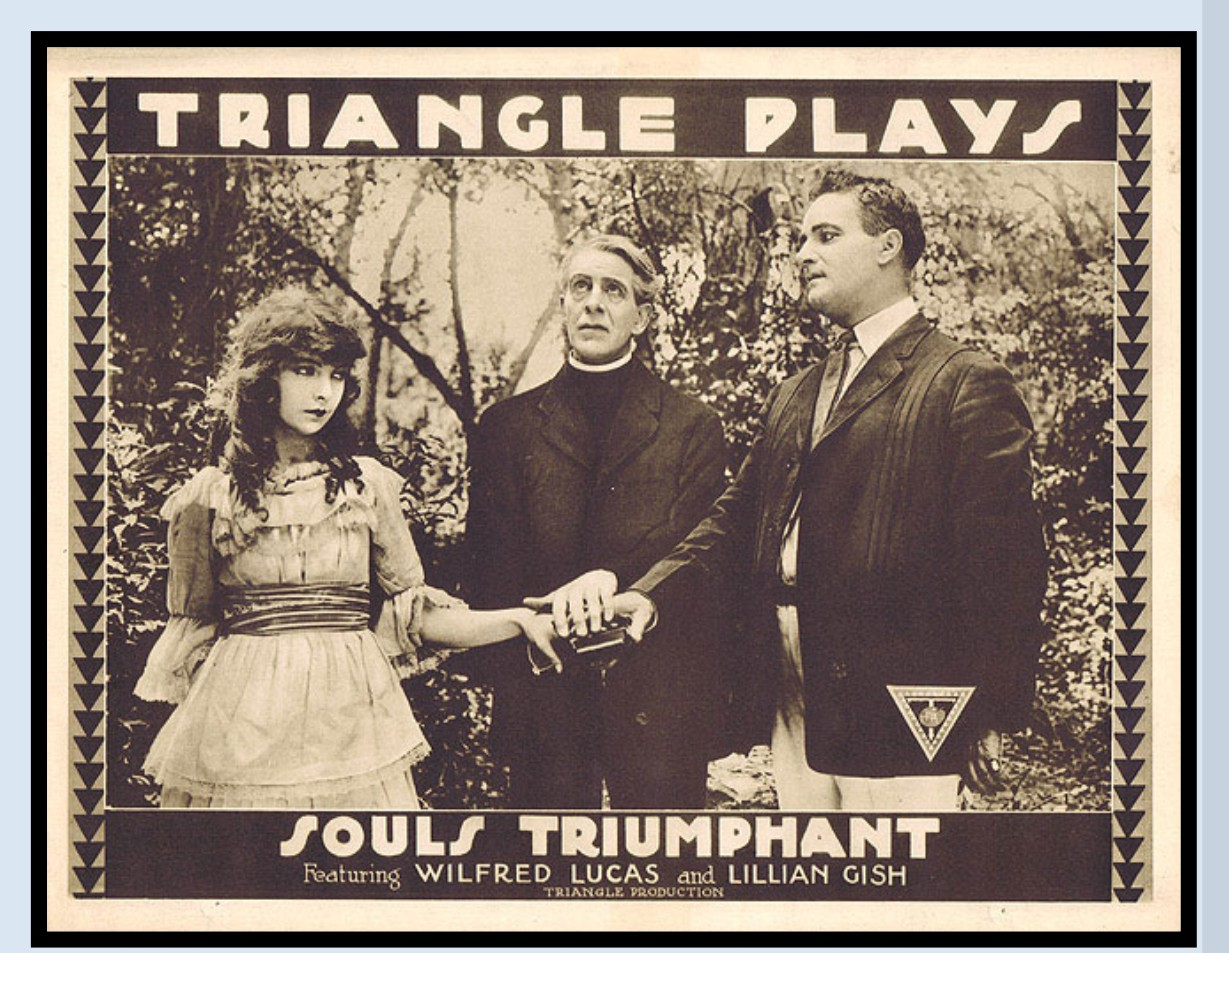 Lillian Gish in Souls Triumphant (1917)